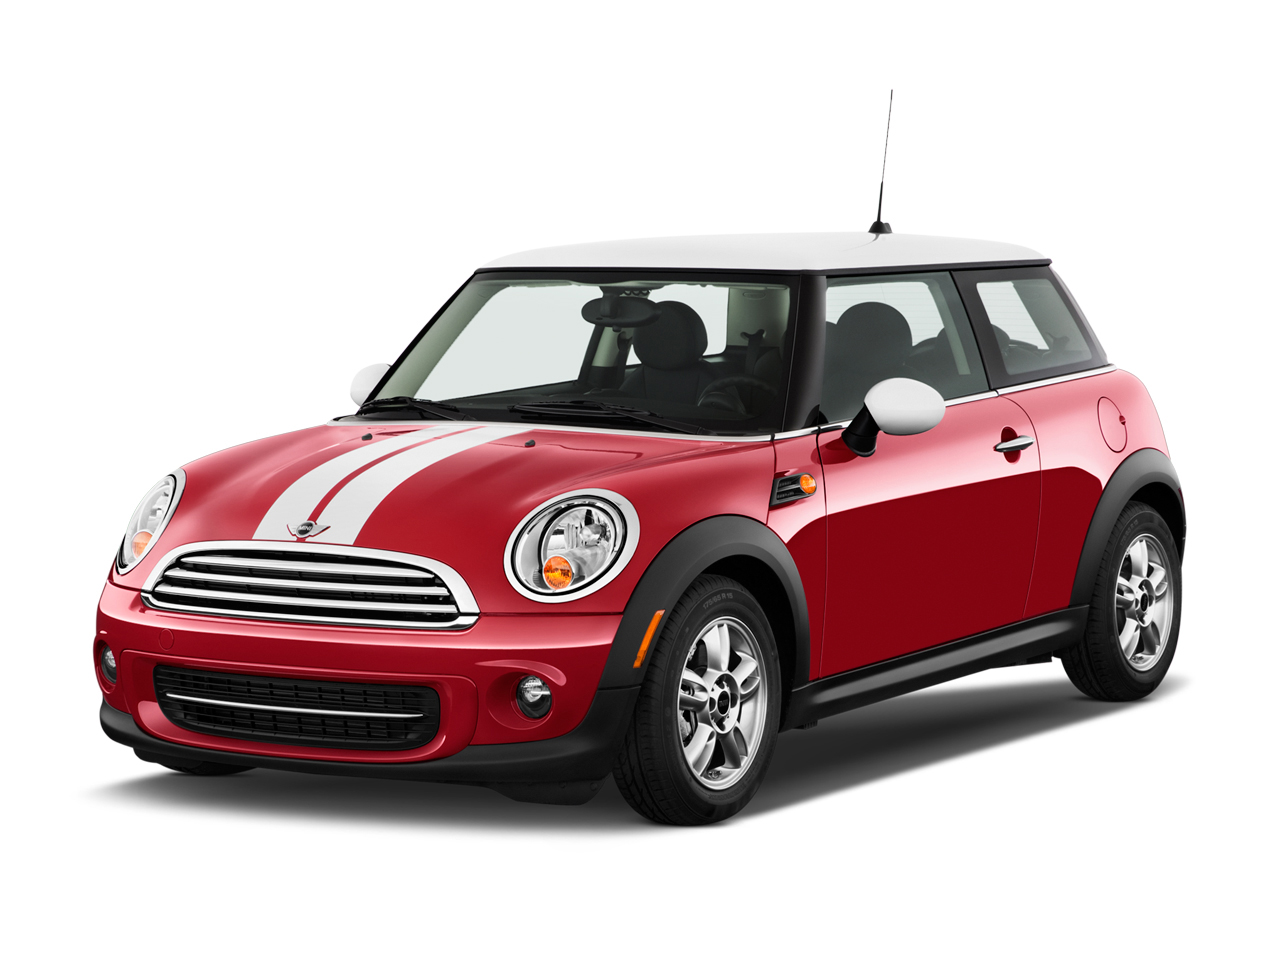 Mini Cooper Houston U003eu003e 2013 MINI Cooper Quality Review   The Car Connection